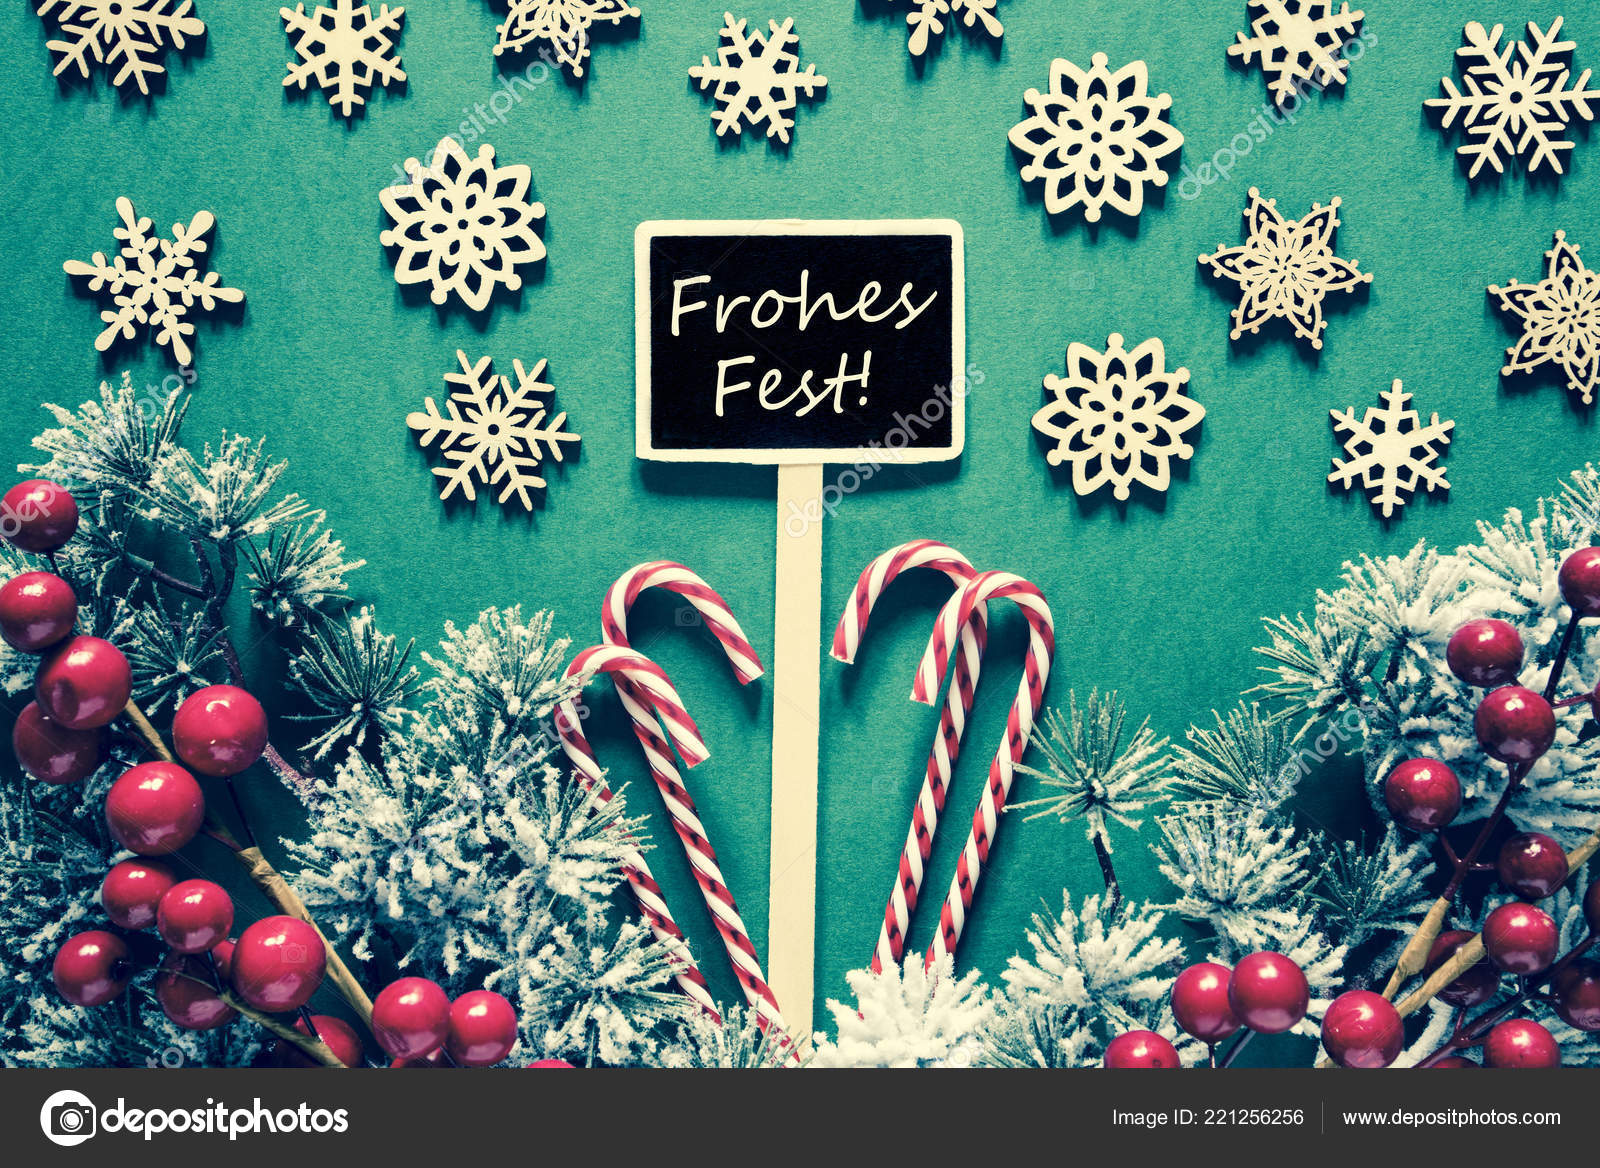 Text Frohes Fest Means Merry Christmas